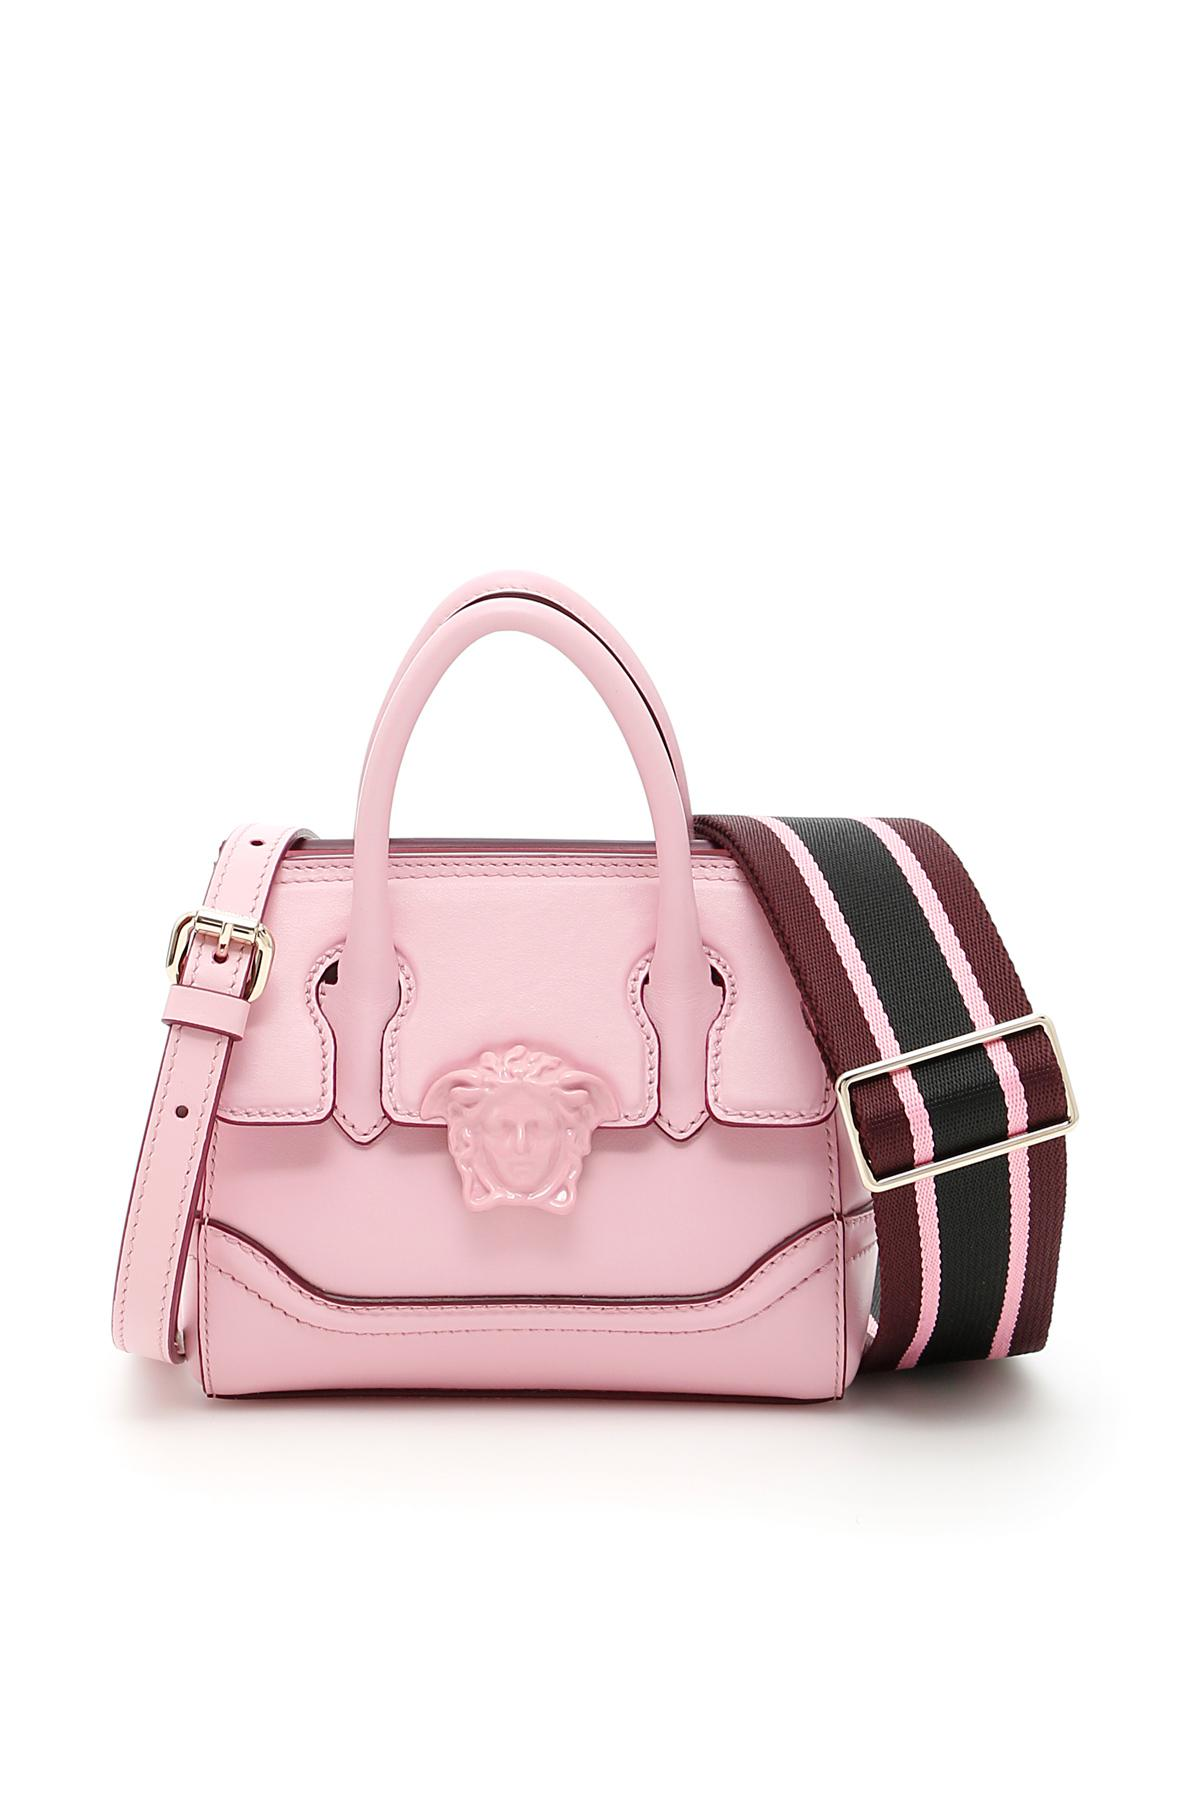 e8057616a620 Lyst - Versace Palazzo Empire Shoulder Bag in Pink